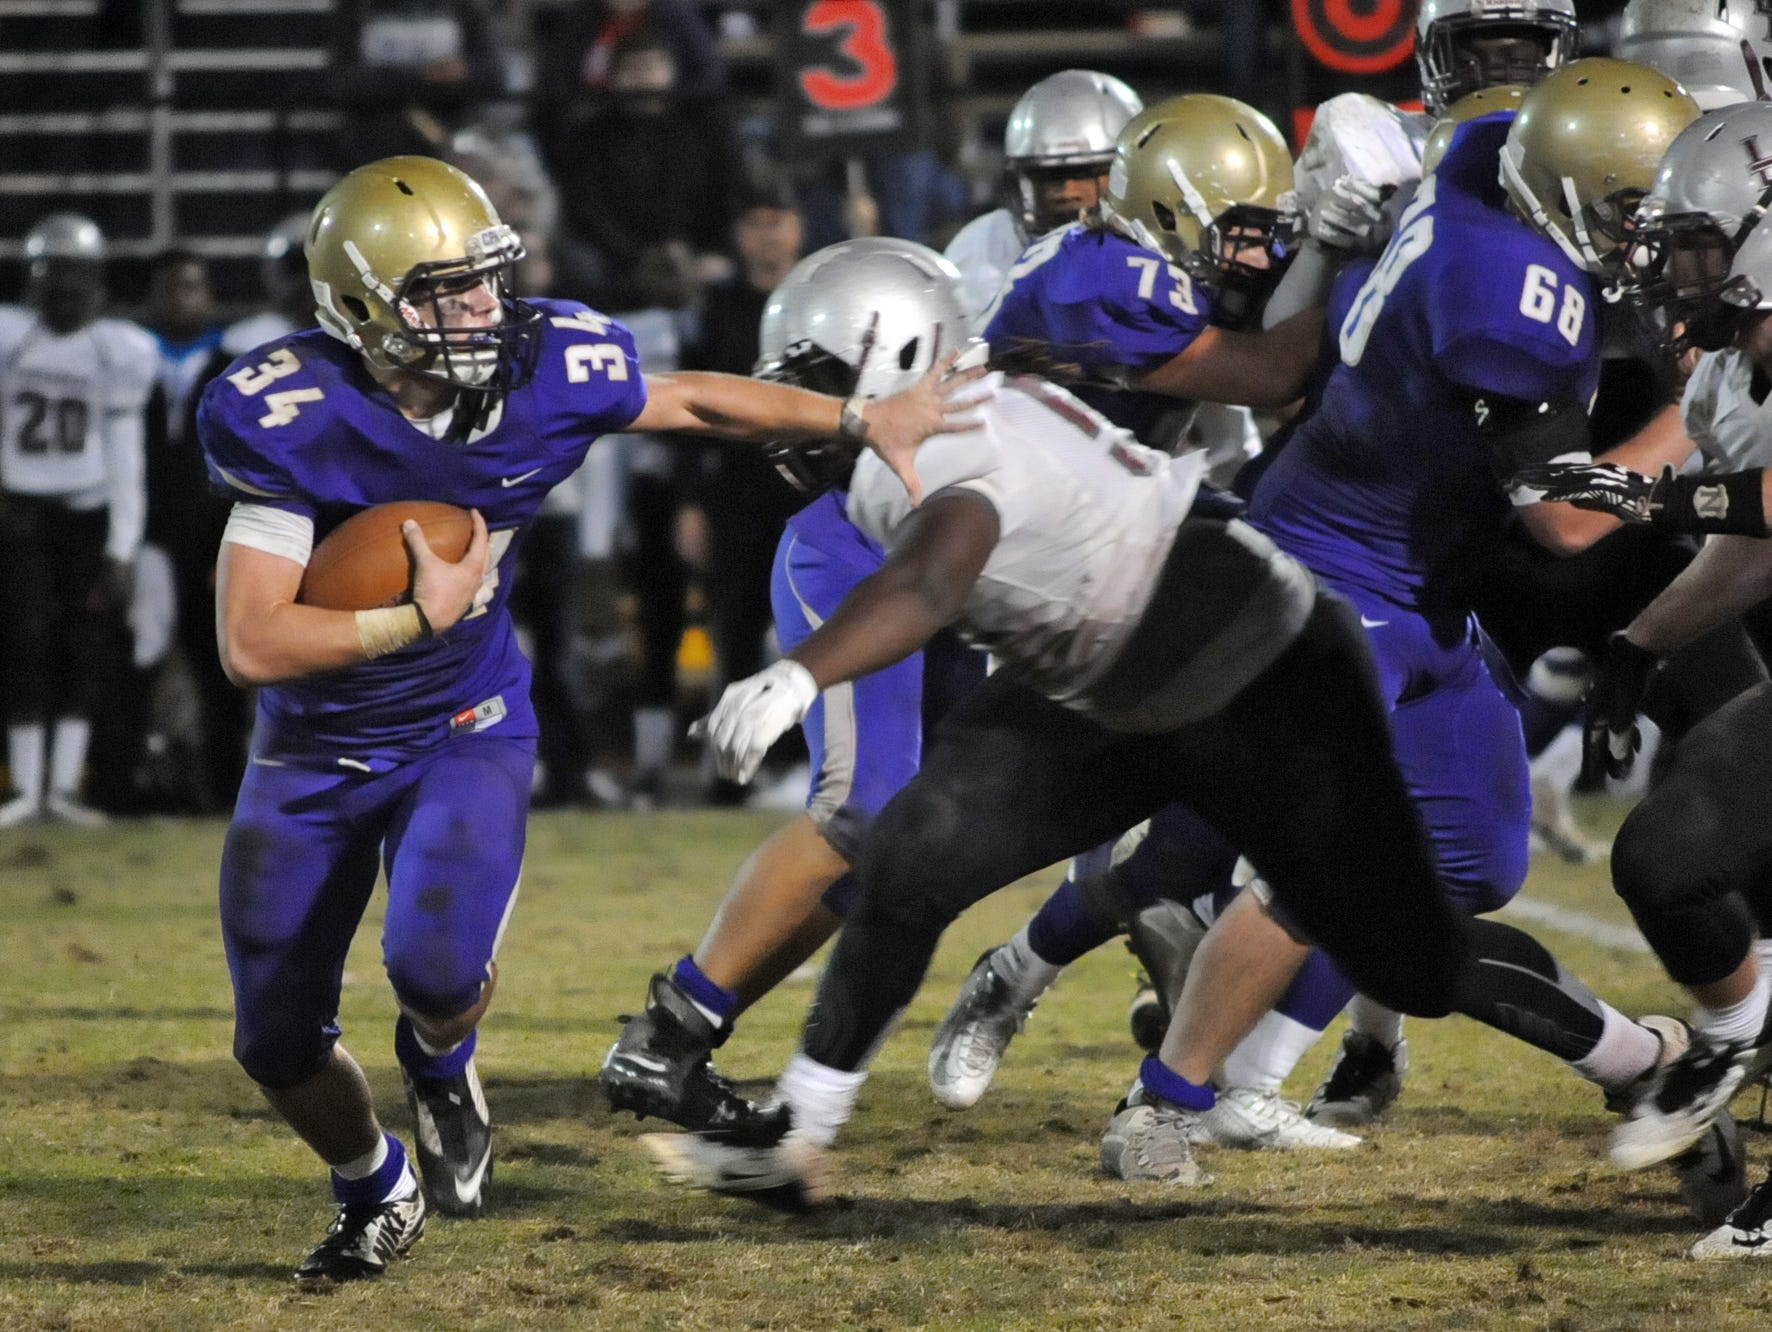 CPA's James Deaton looks to get by Liberty Magnet defenders in the fourth quarter of CPA's 21-0 3A semifinal win.